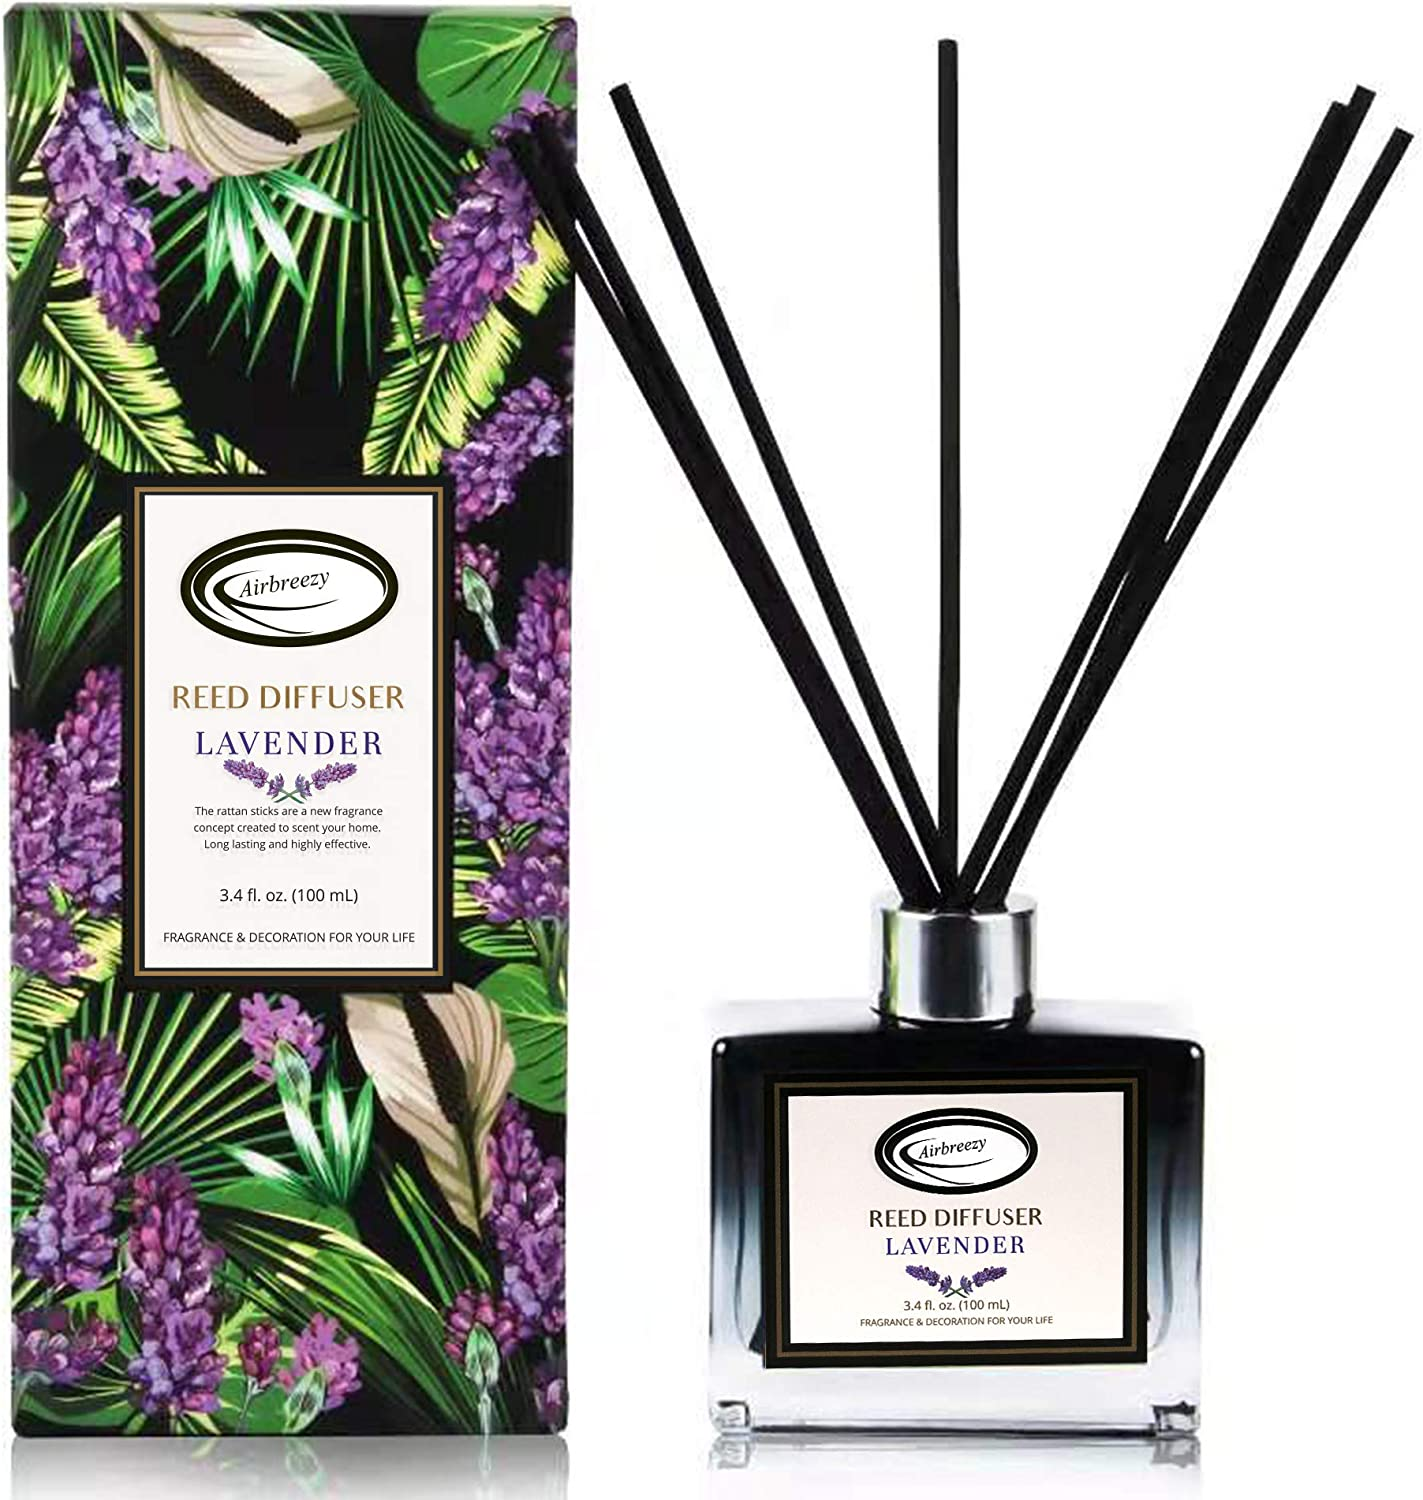 Airbreezy Fragrances Reed Diffuser Set with Sticks, Lavender Scent Incense Oil, Essential Oil Air Freshener for Home, Office, Gym, and Room Diffuser, 3.4 fl. oz